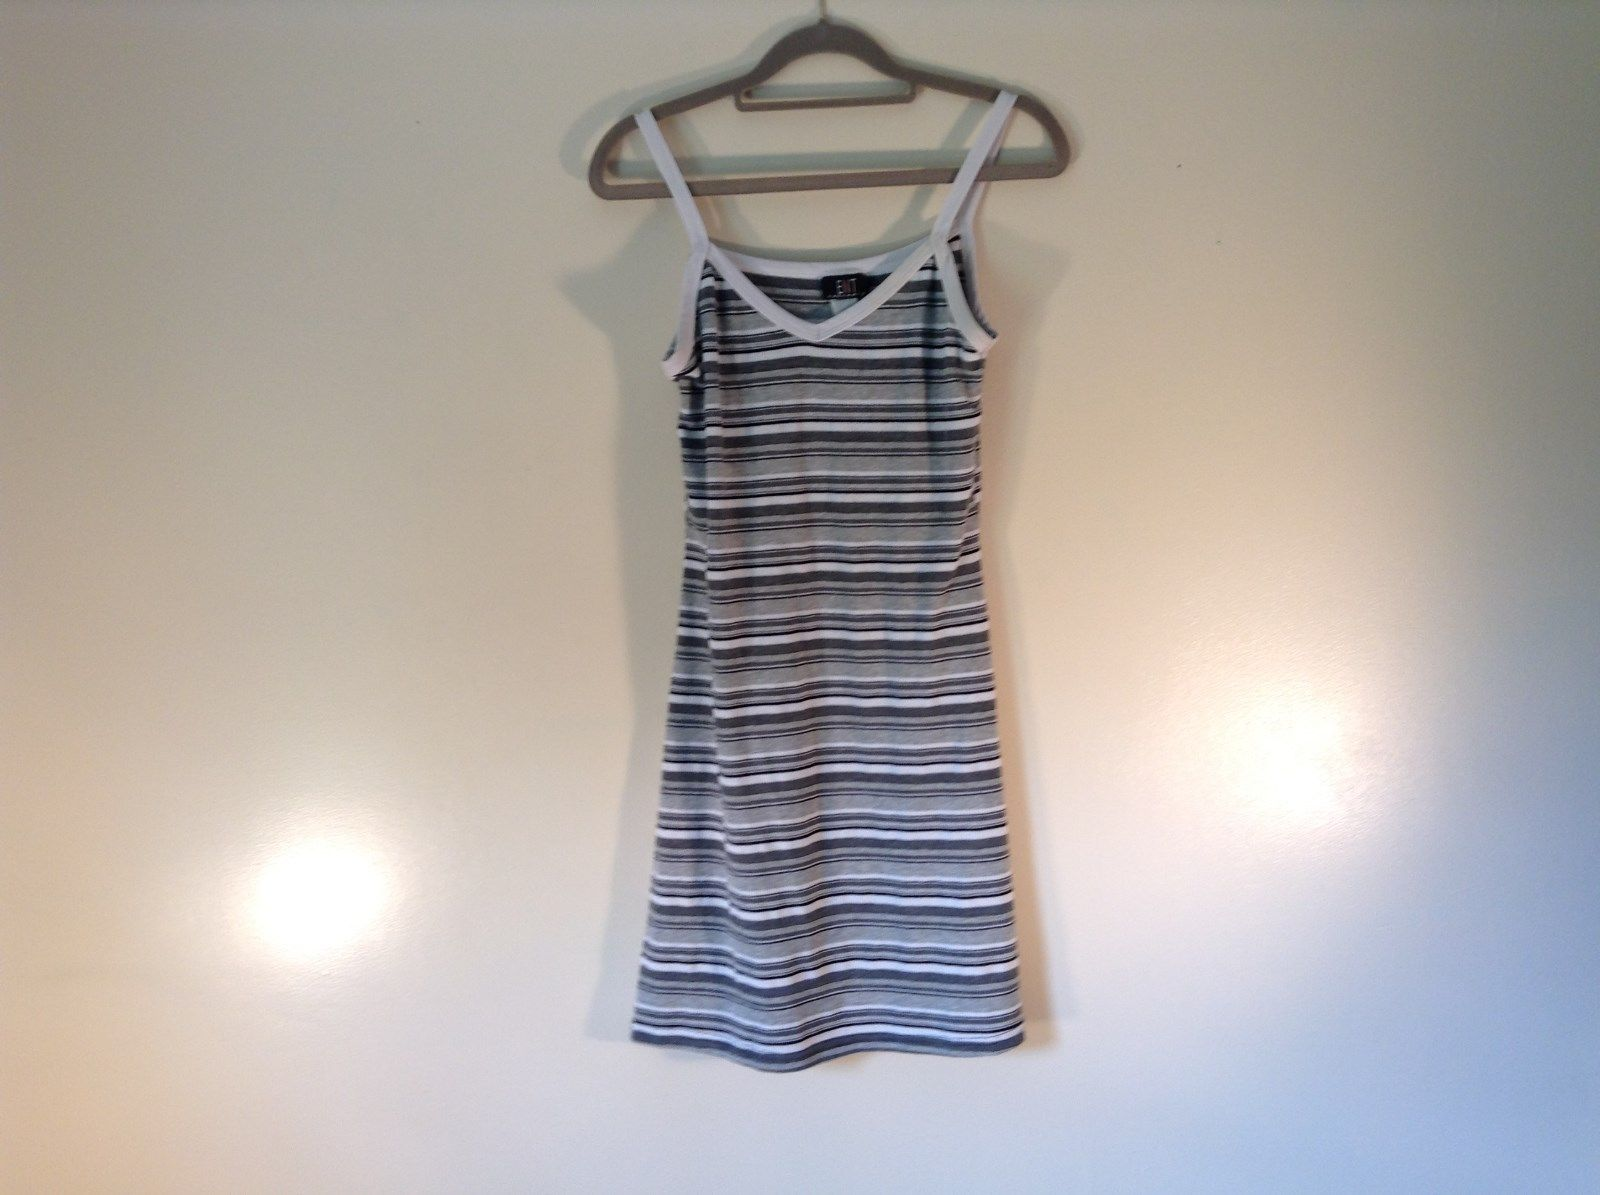 ENT Entrancy Striped V Neck Tank Top Stretchy Size Medium Made In USA